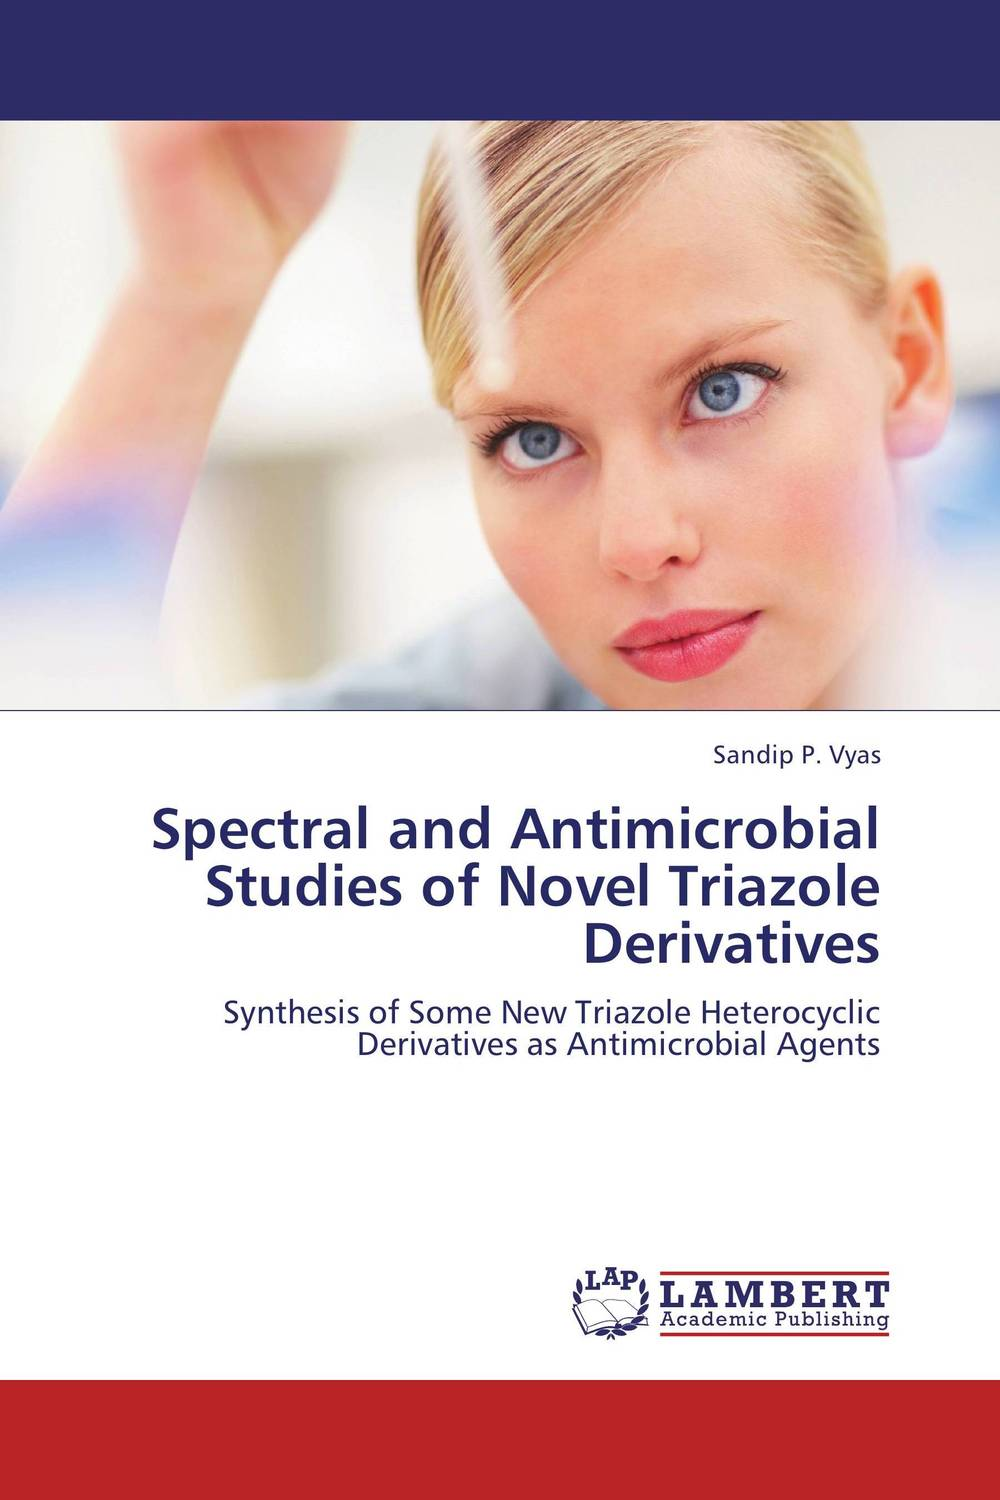 Spectral and Antimicrobial Studies of Novel Triazole Derivatives купить